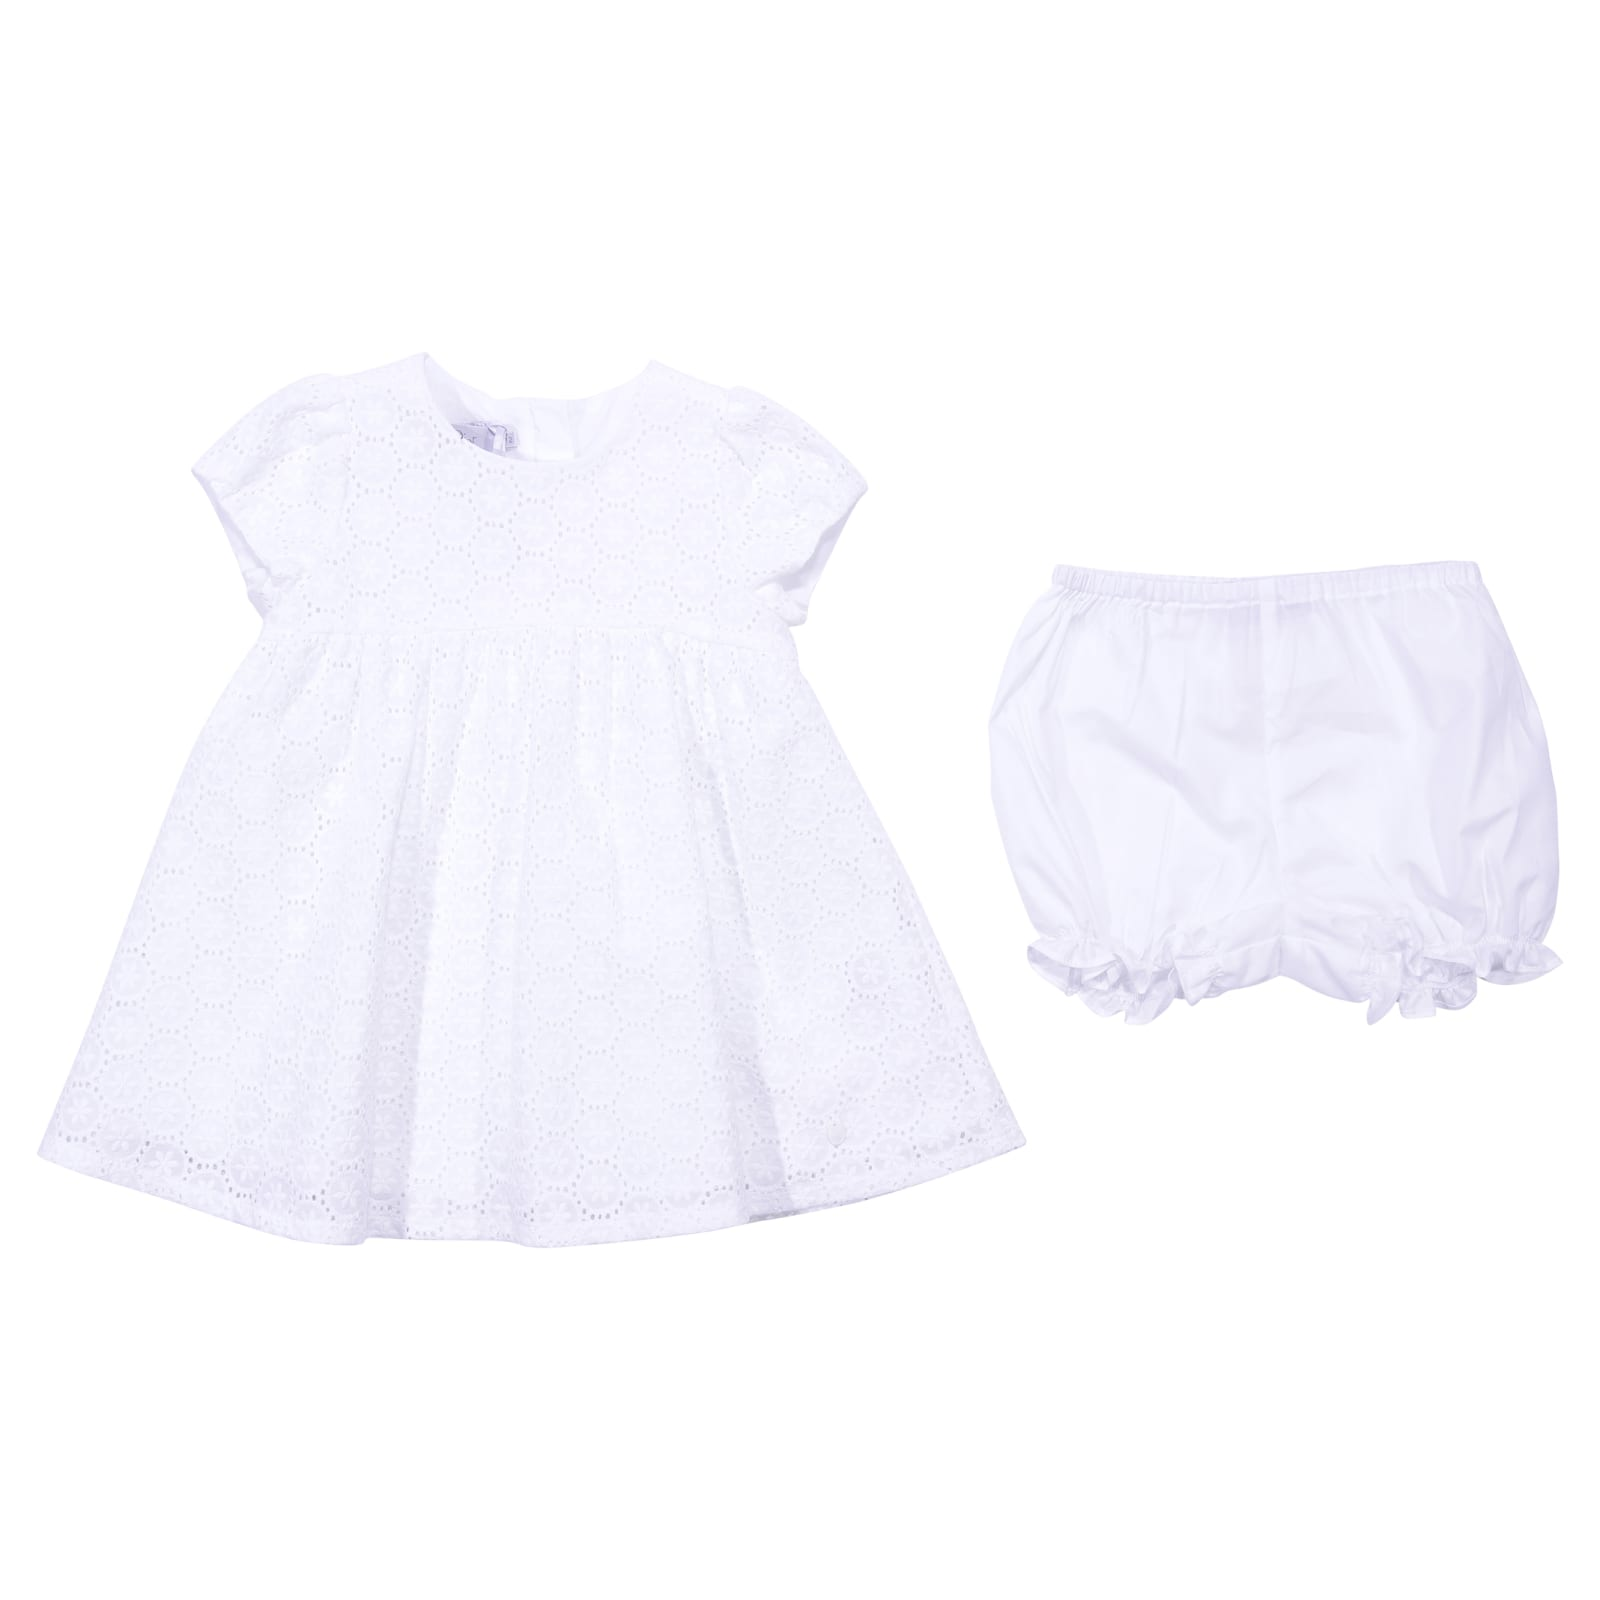 Photo of  Baby Dior White Broiderie Anglaise Dress & Diaper Cover- shop Baby Dior  online sales